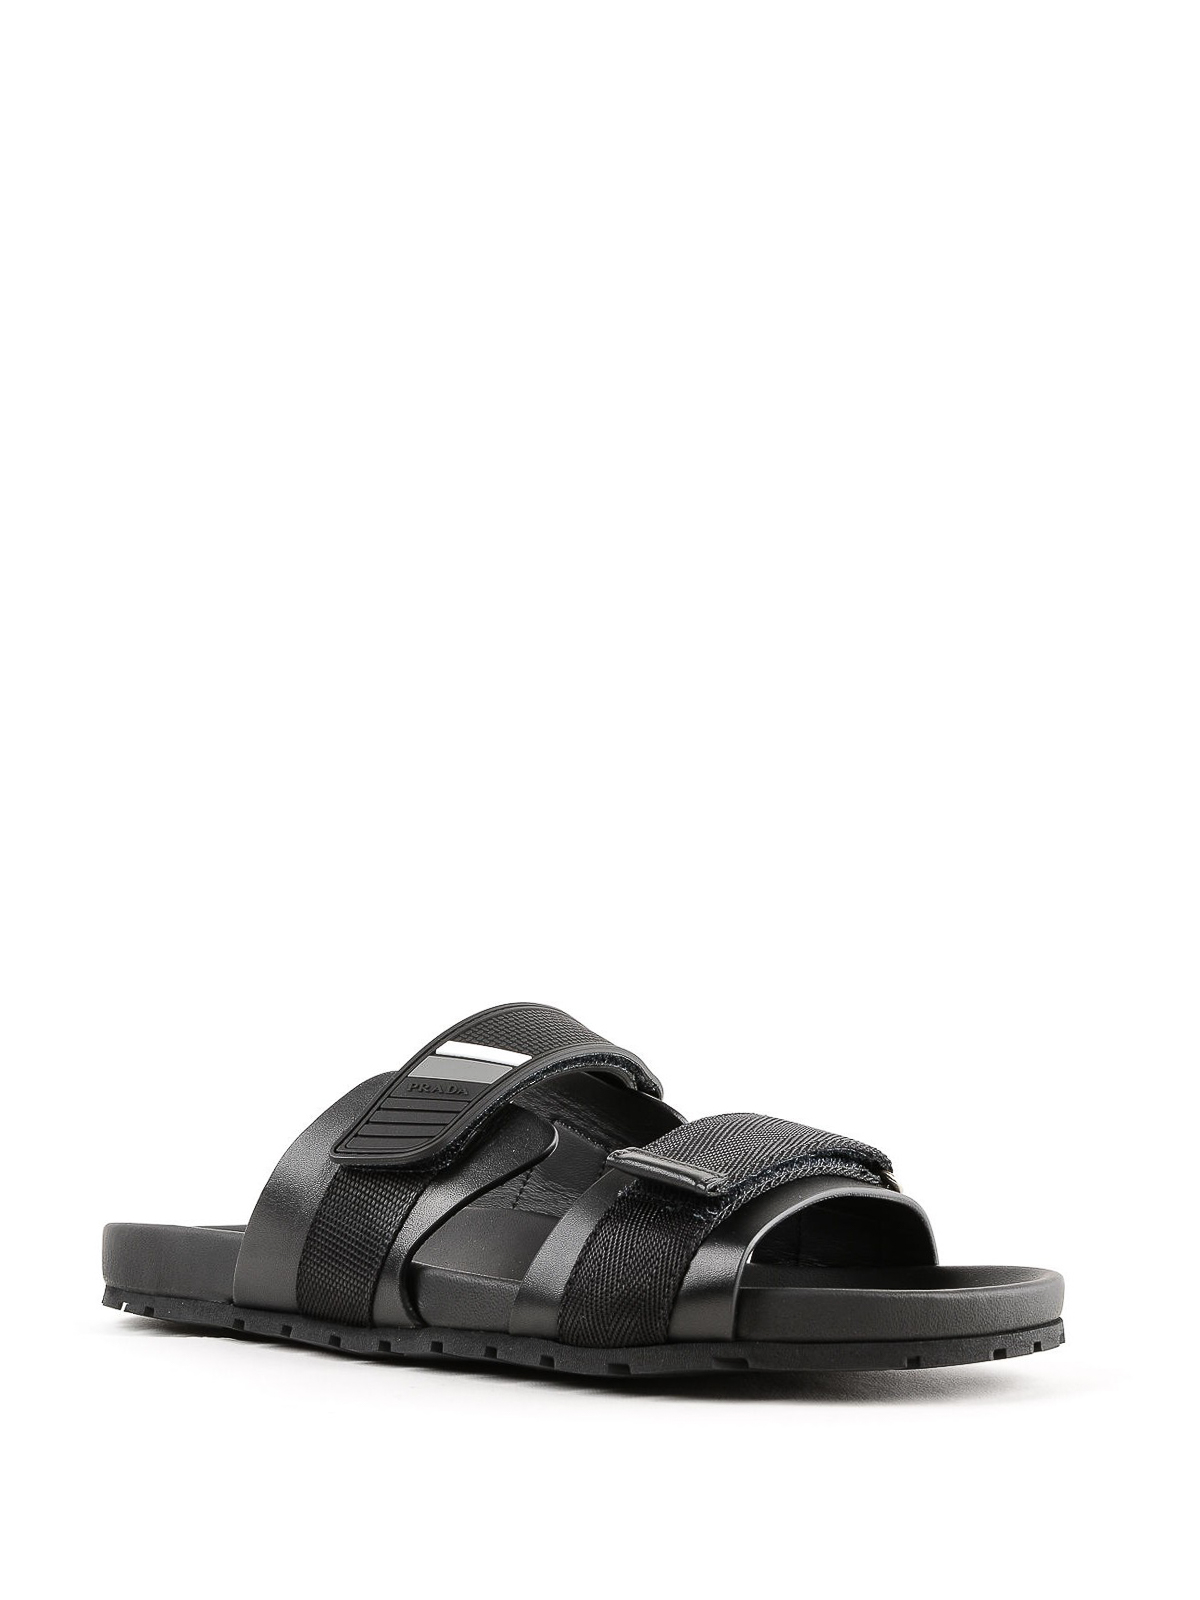 Leather sandals with Velcro straps